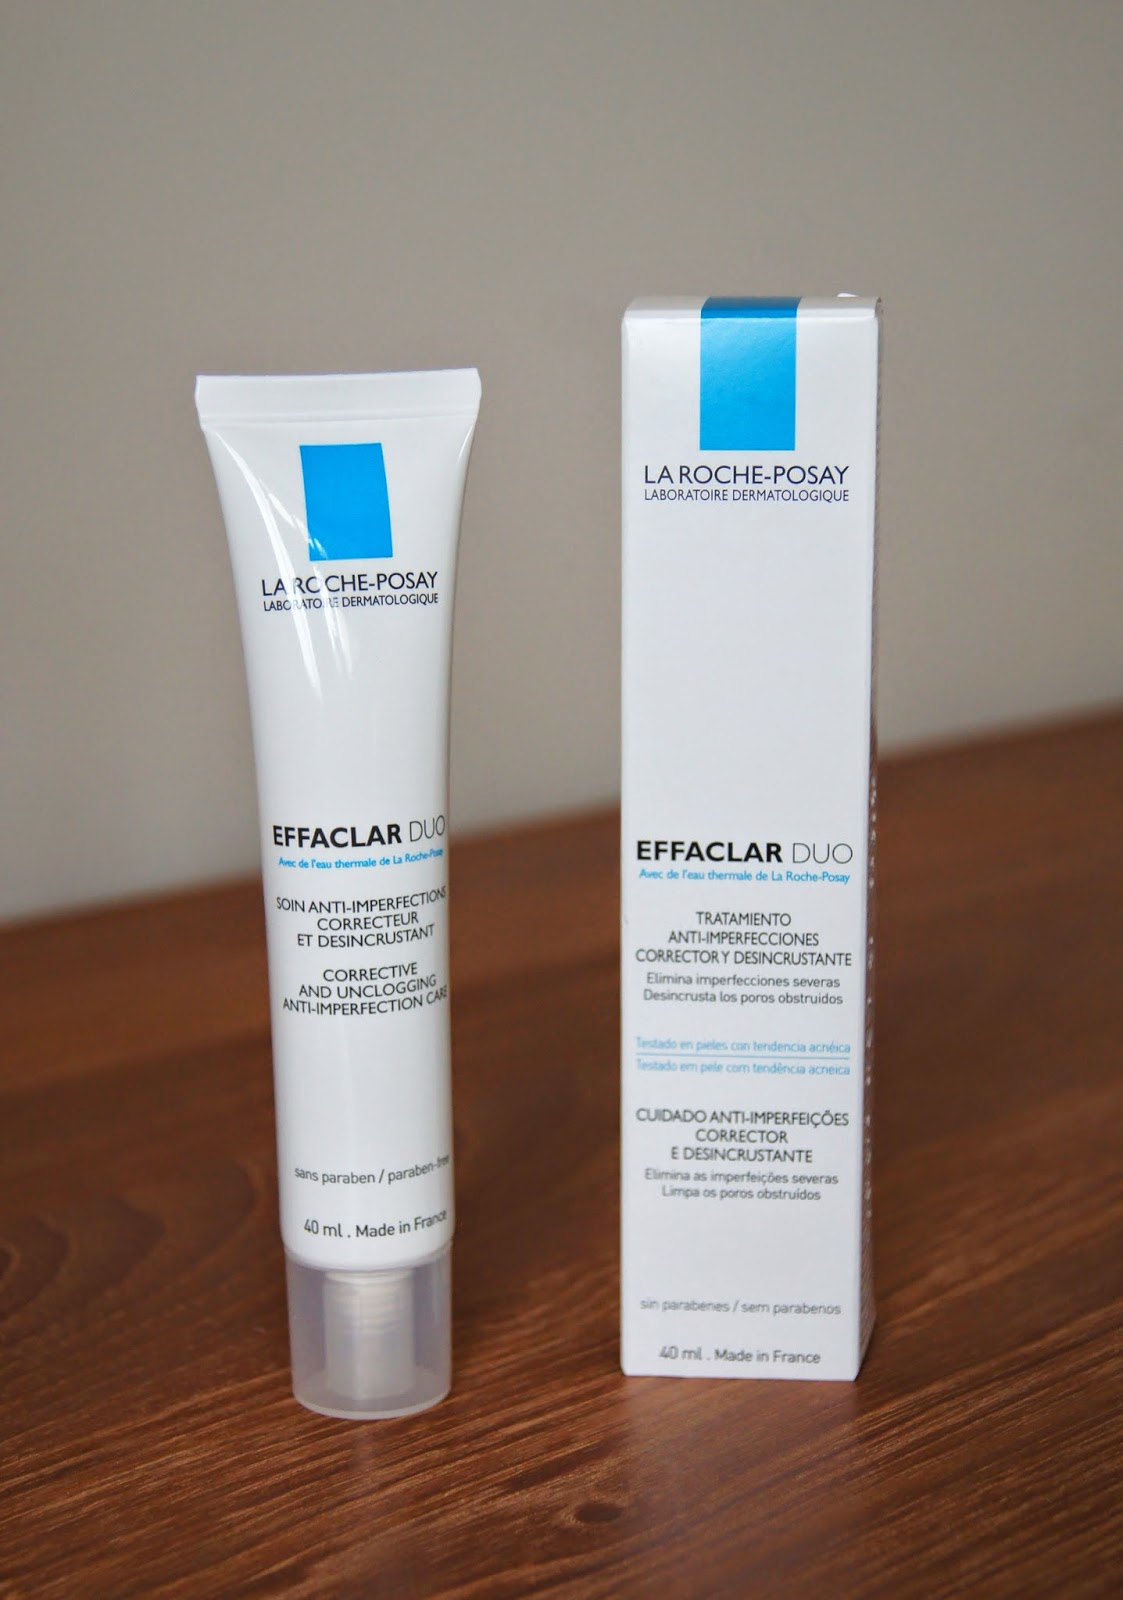 la roche posay effaclar duo review